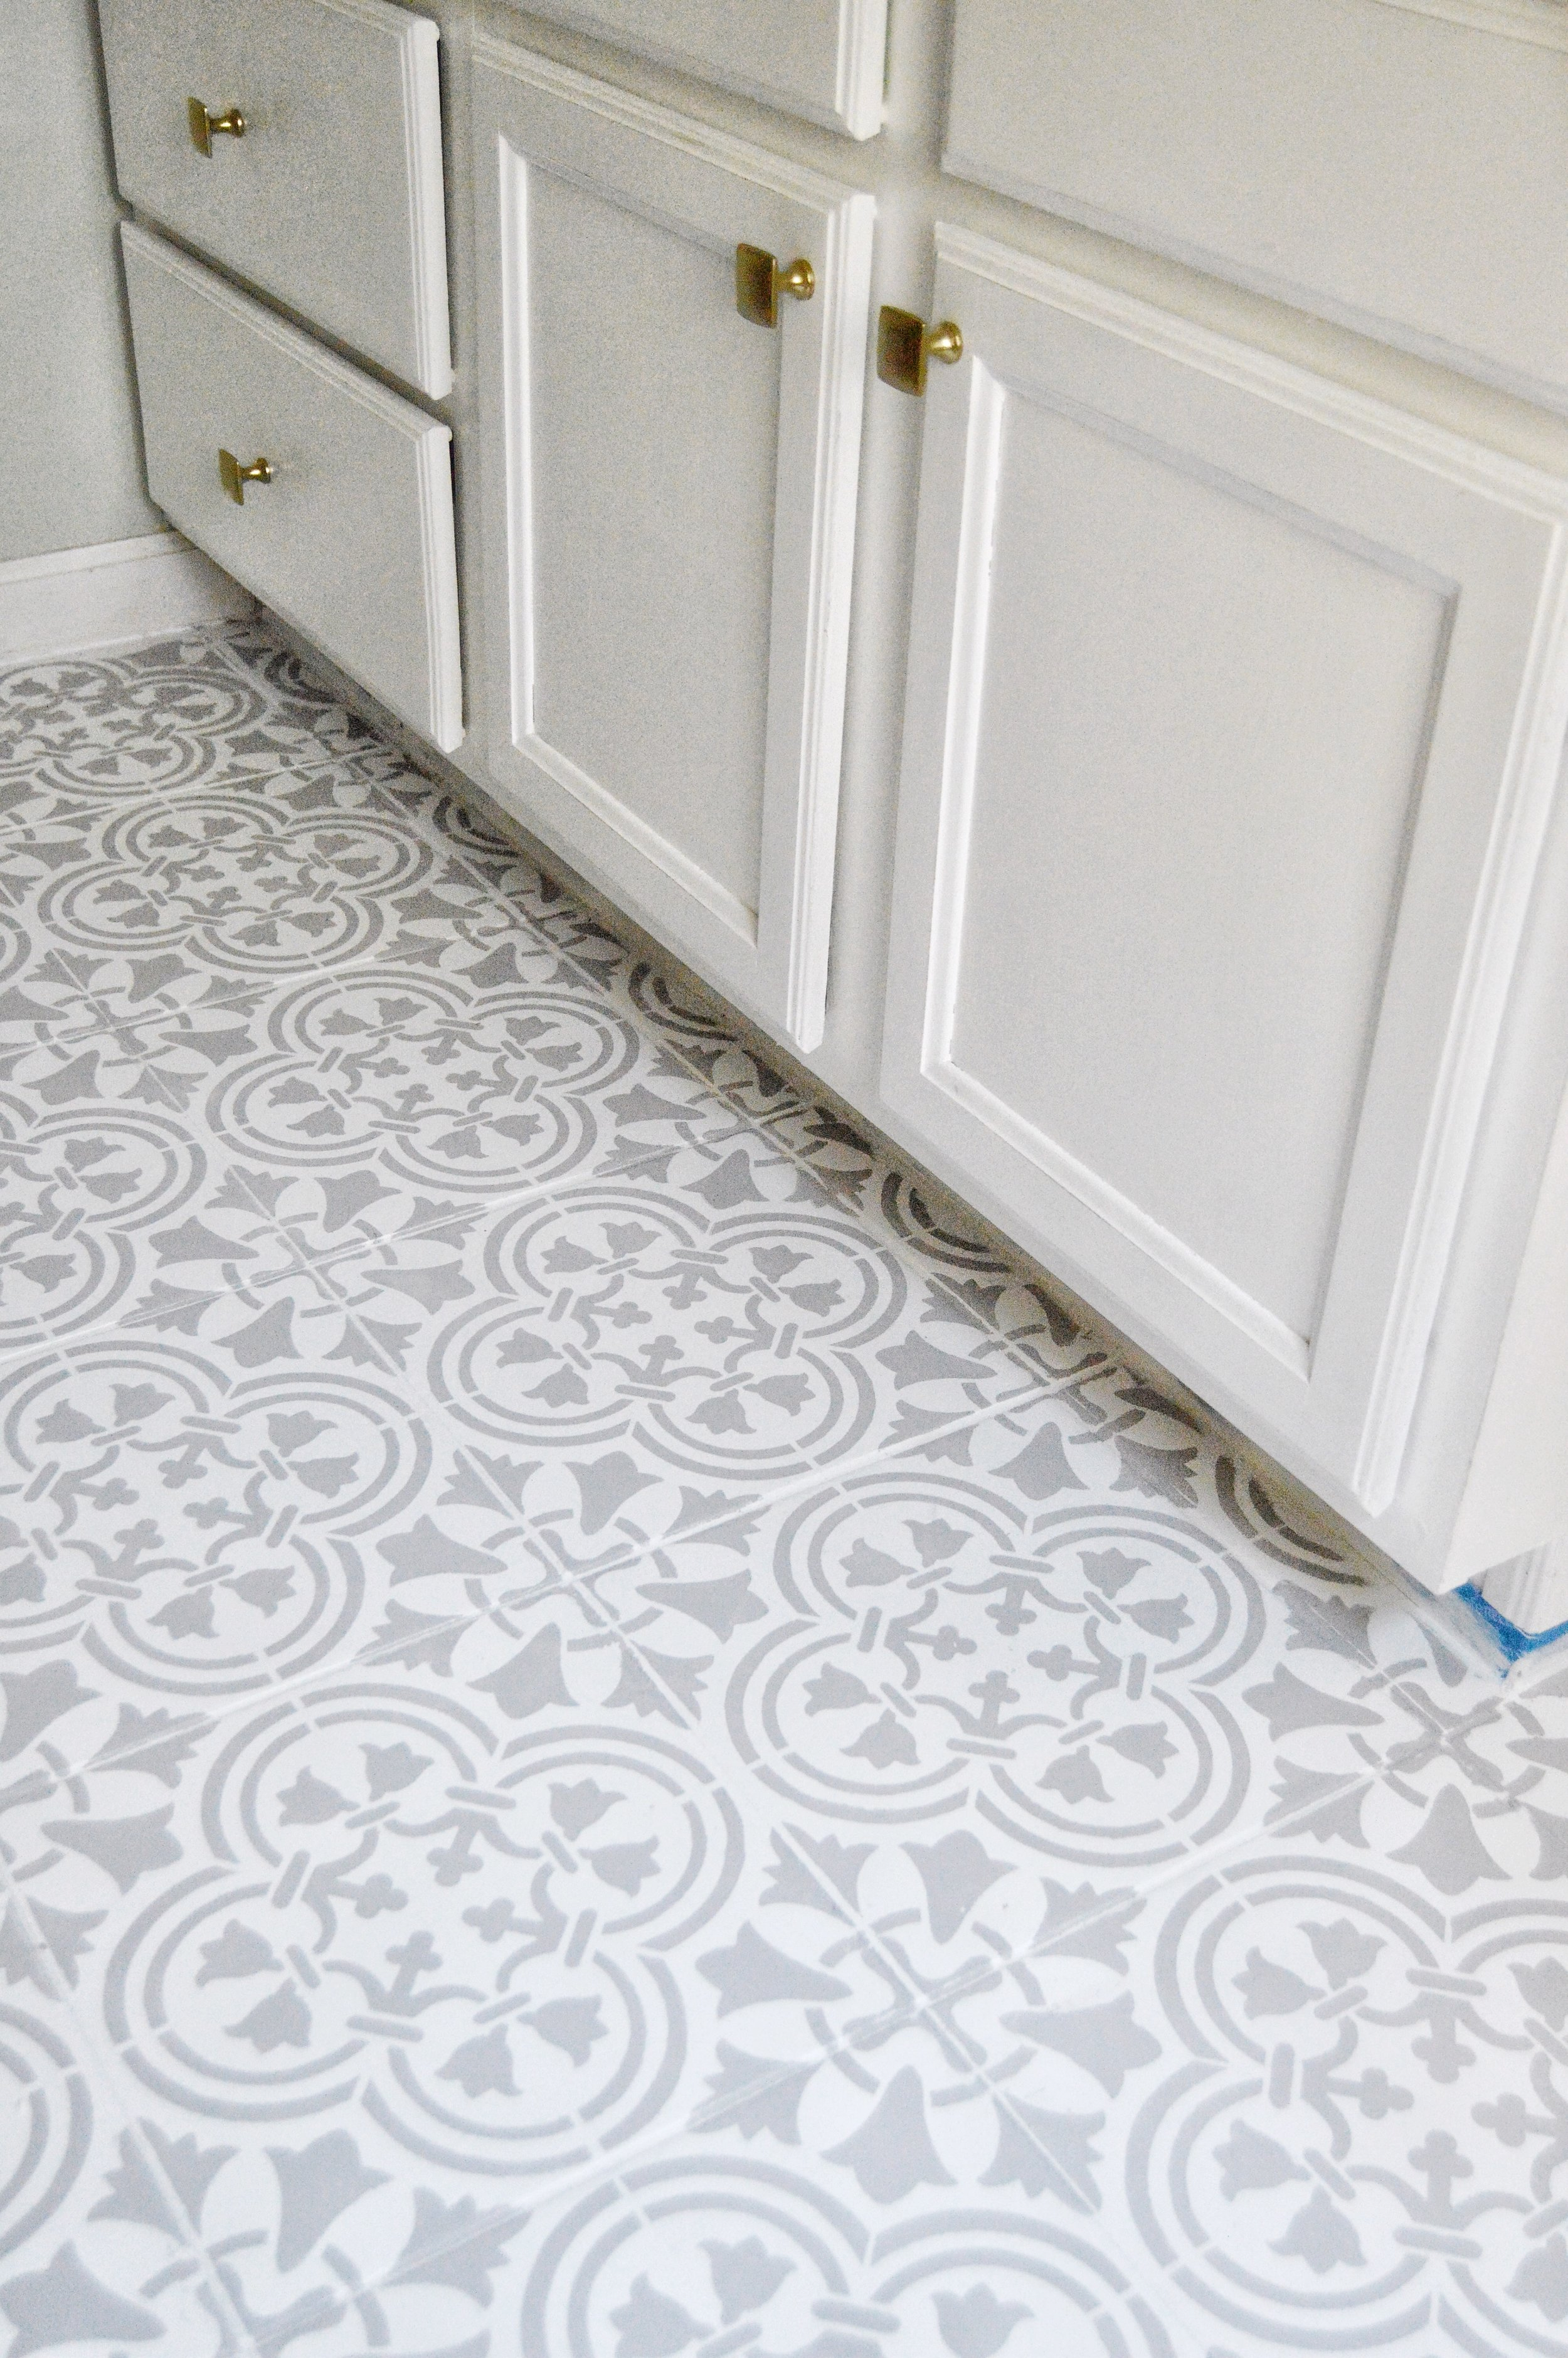 Ideas For Covering Up Tile Floors Without Removing It — The Decor Formula